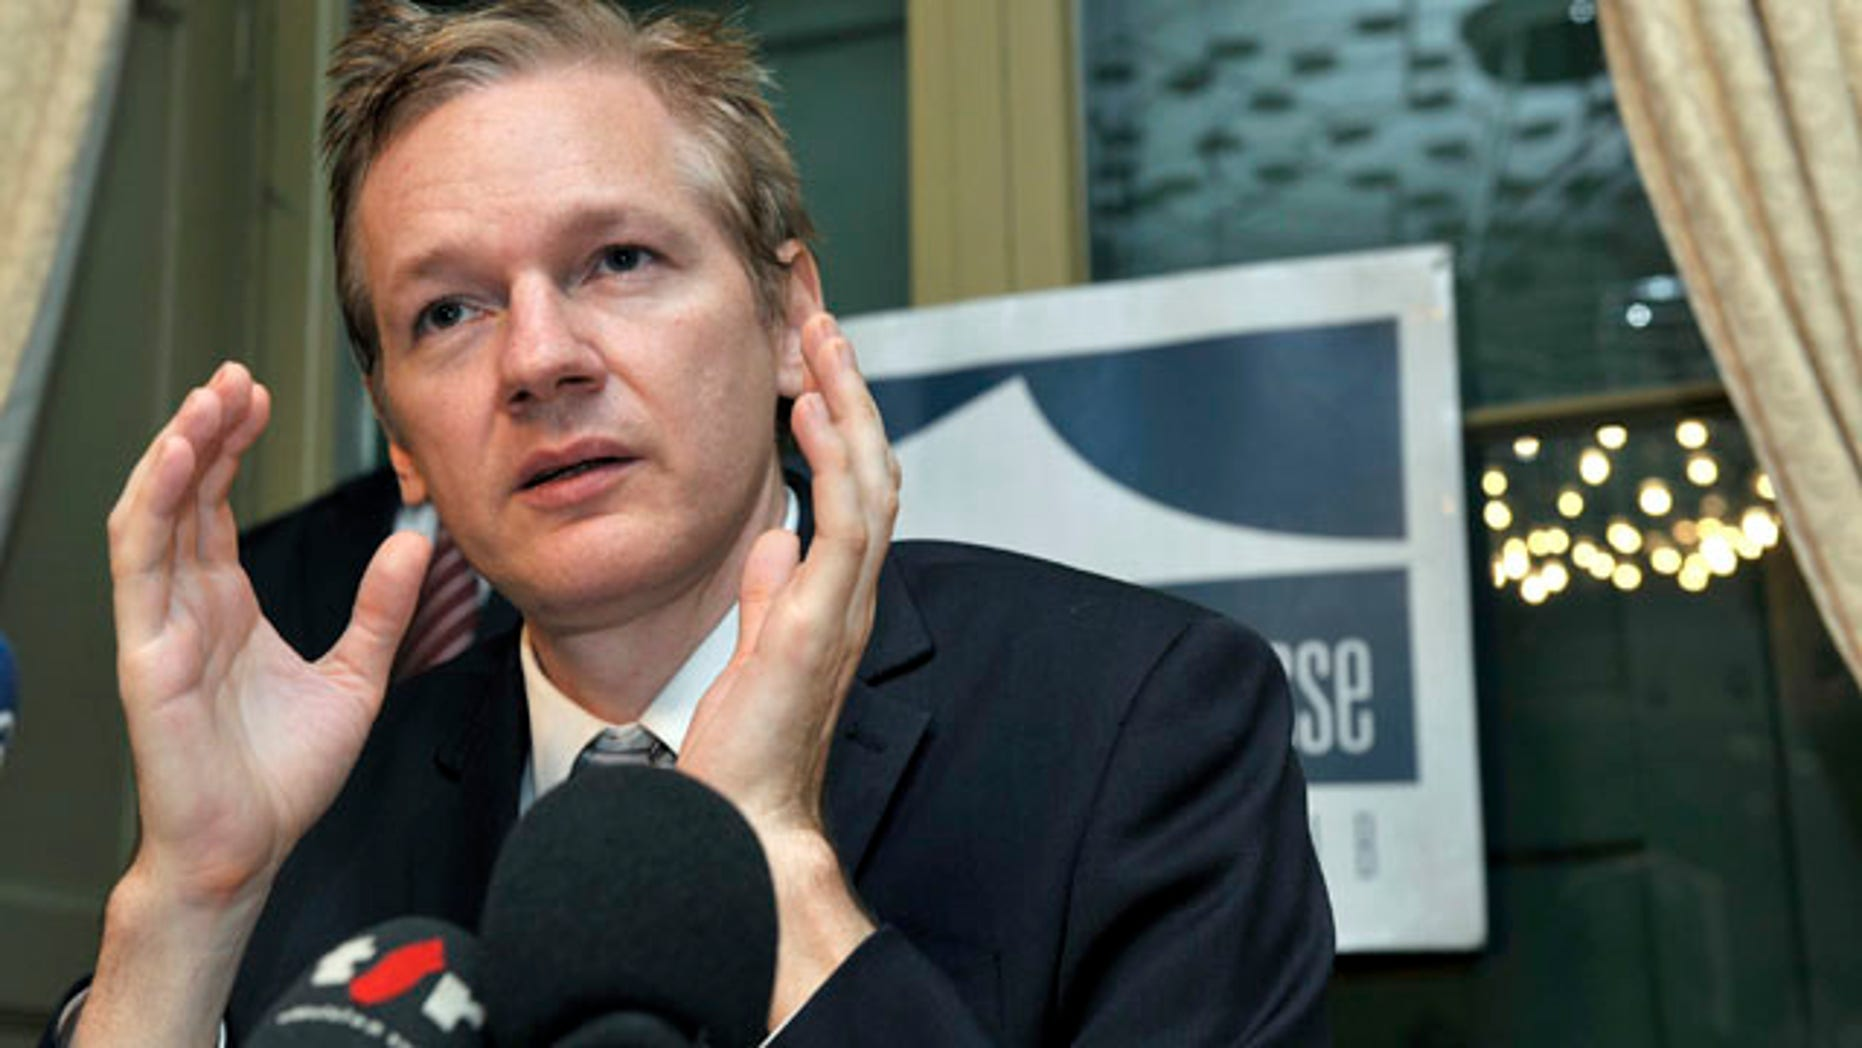 Nov. 4: WikiLeaks founder Julian Assange speaks about the United States and human rights during a press conference at the Geneva press club in Geneva, Switzerland. WikiLeaks posted a message on Twitter that the website's next release will be seven times the size of the largest leak in the history of U.S. intelligence.